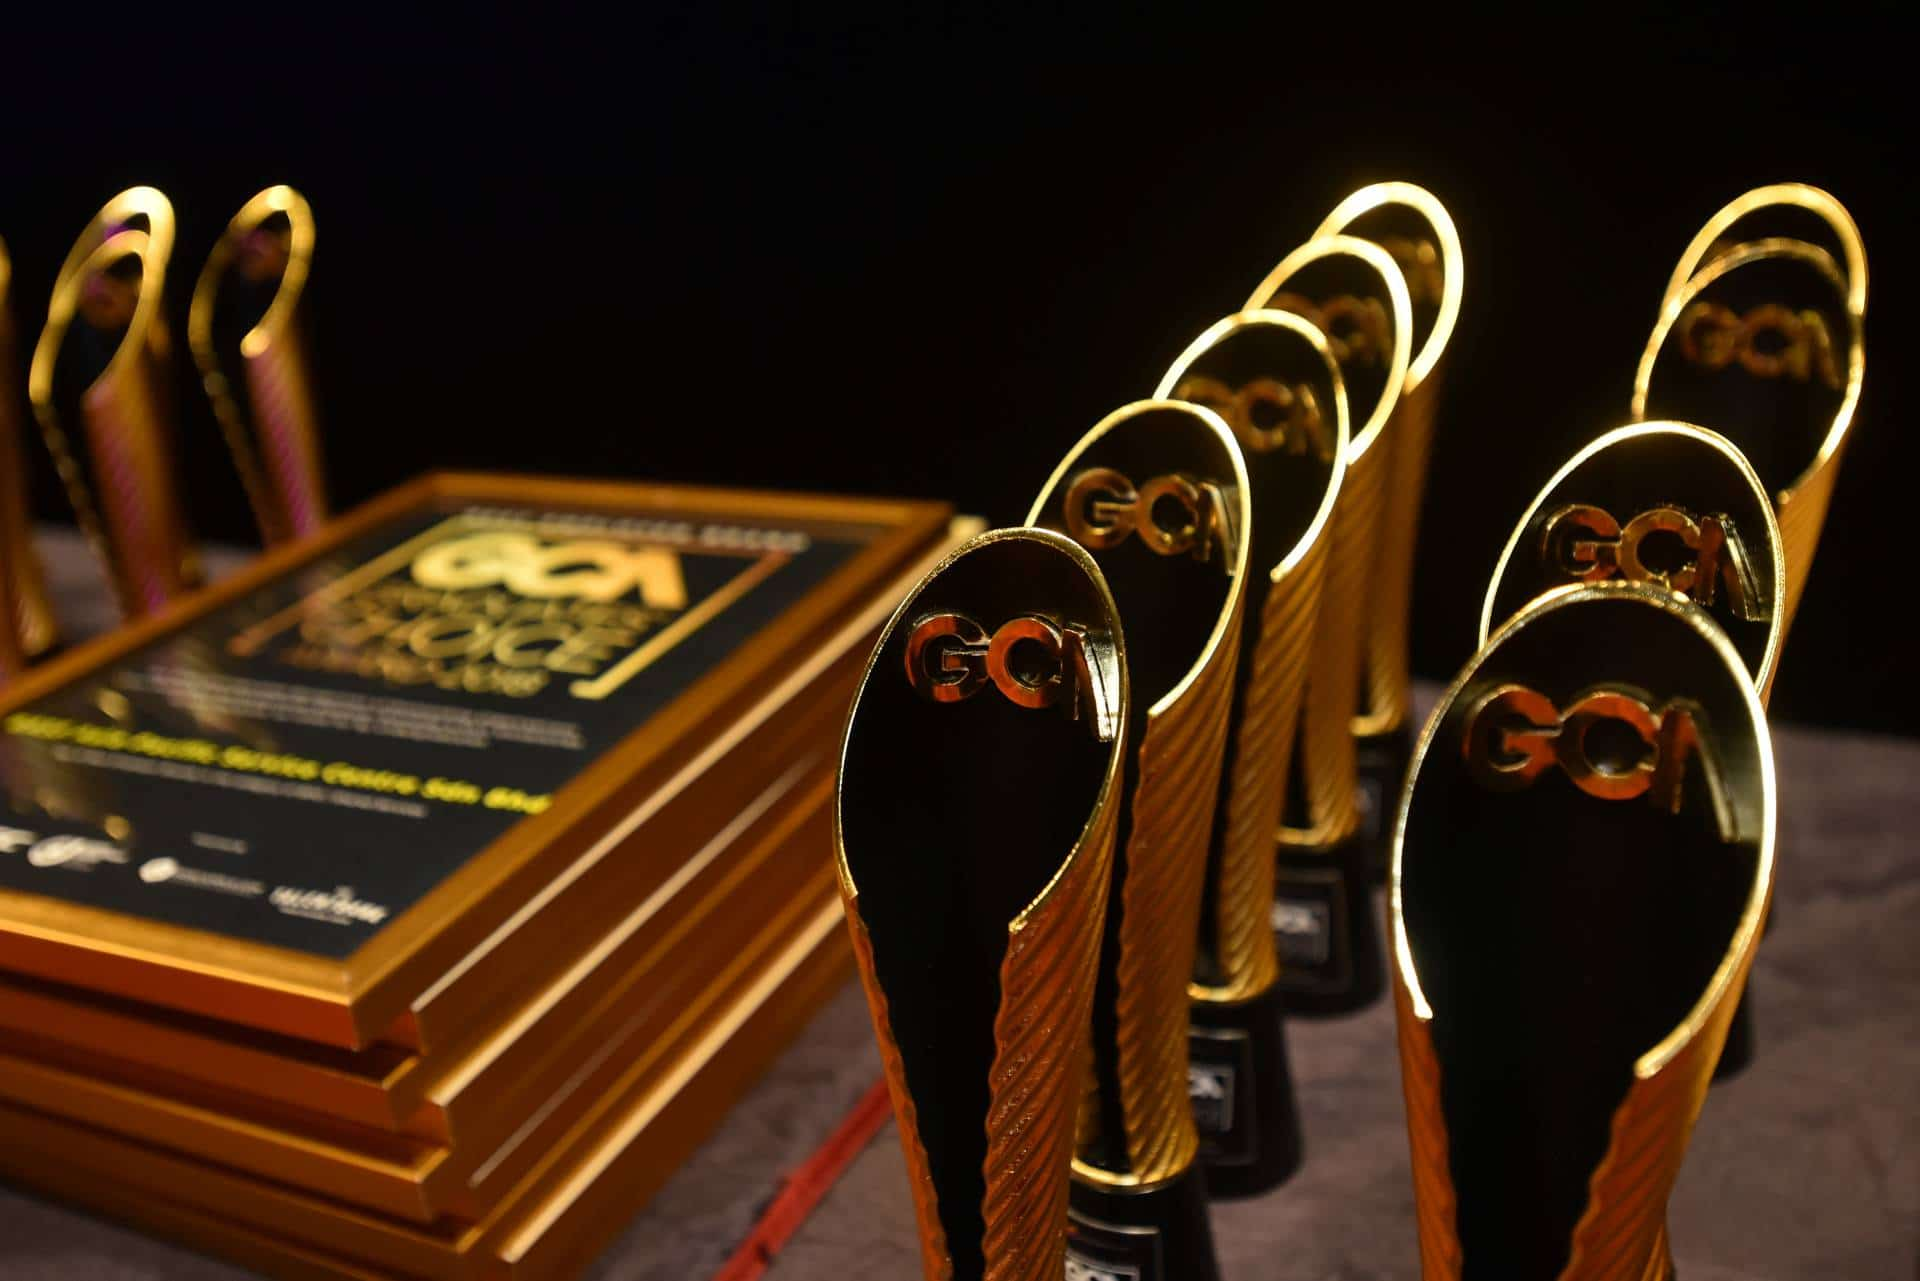 Maybank was recognised as the top employer by Graduates' Choice Award